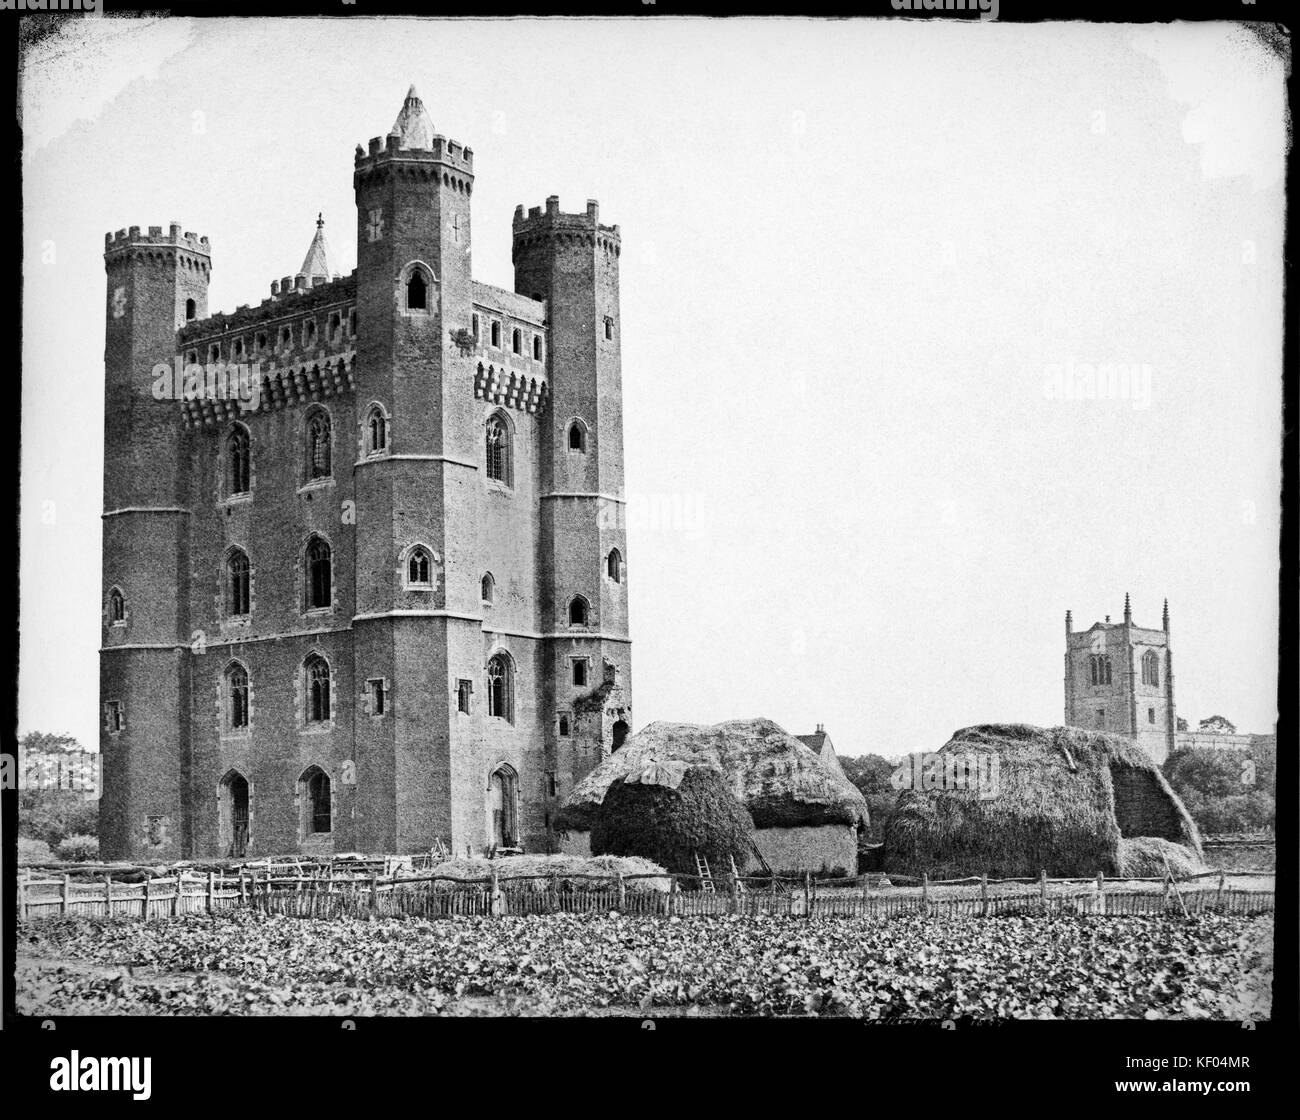 Tattershall Castle, Tattershall, Lincolnshire, 1857. Attributed to Henry D Taylor (b 1814), paper negative. A rare - Stock Image